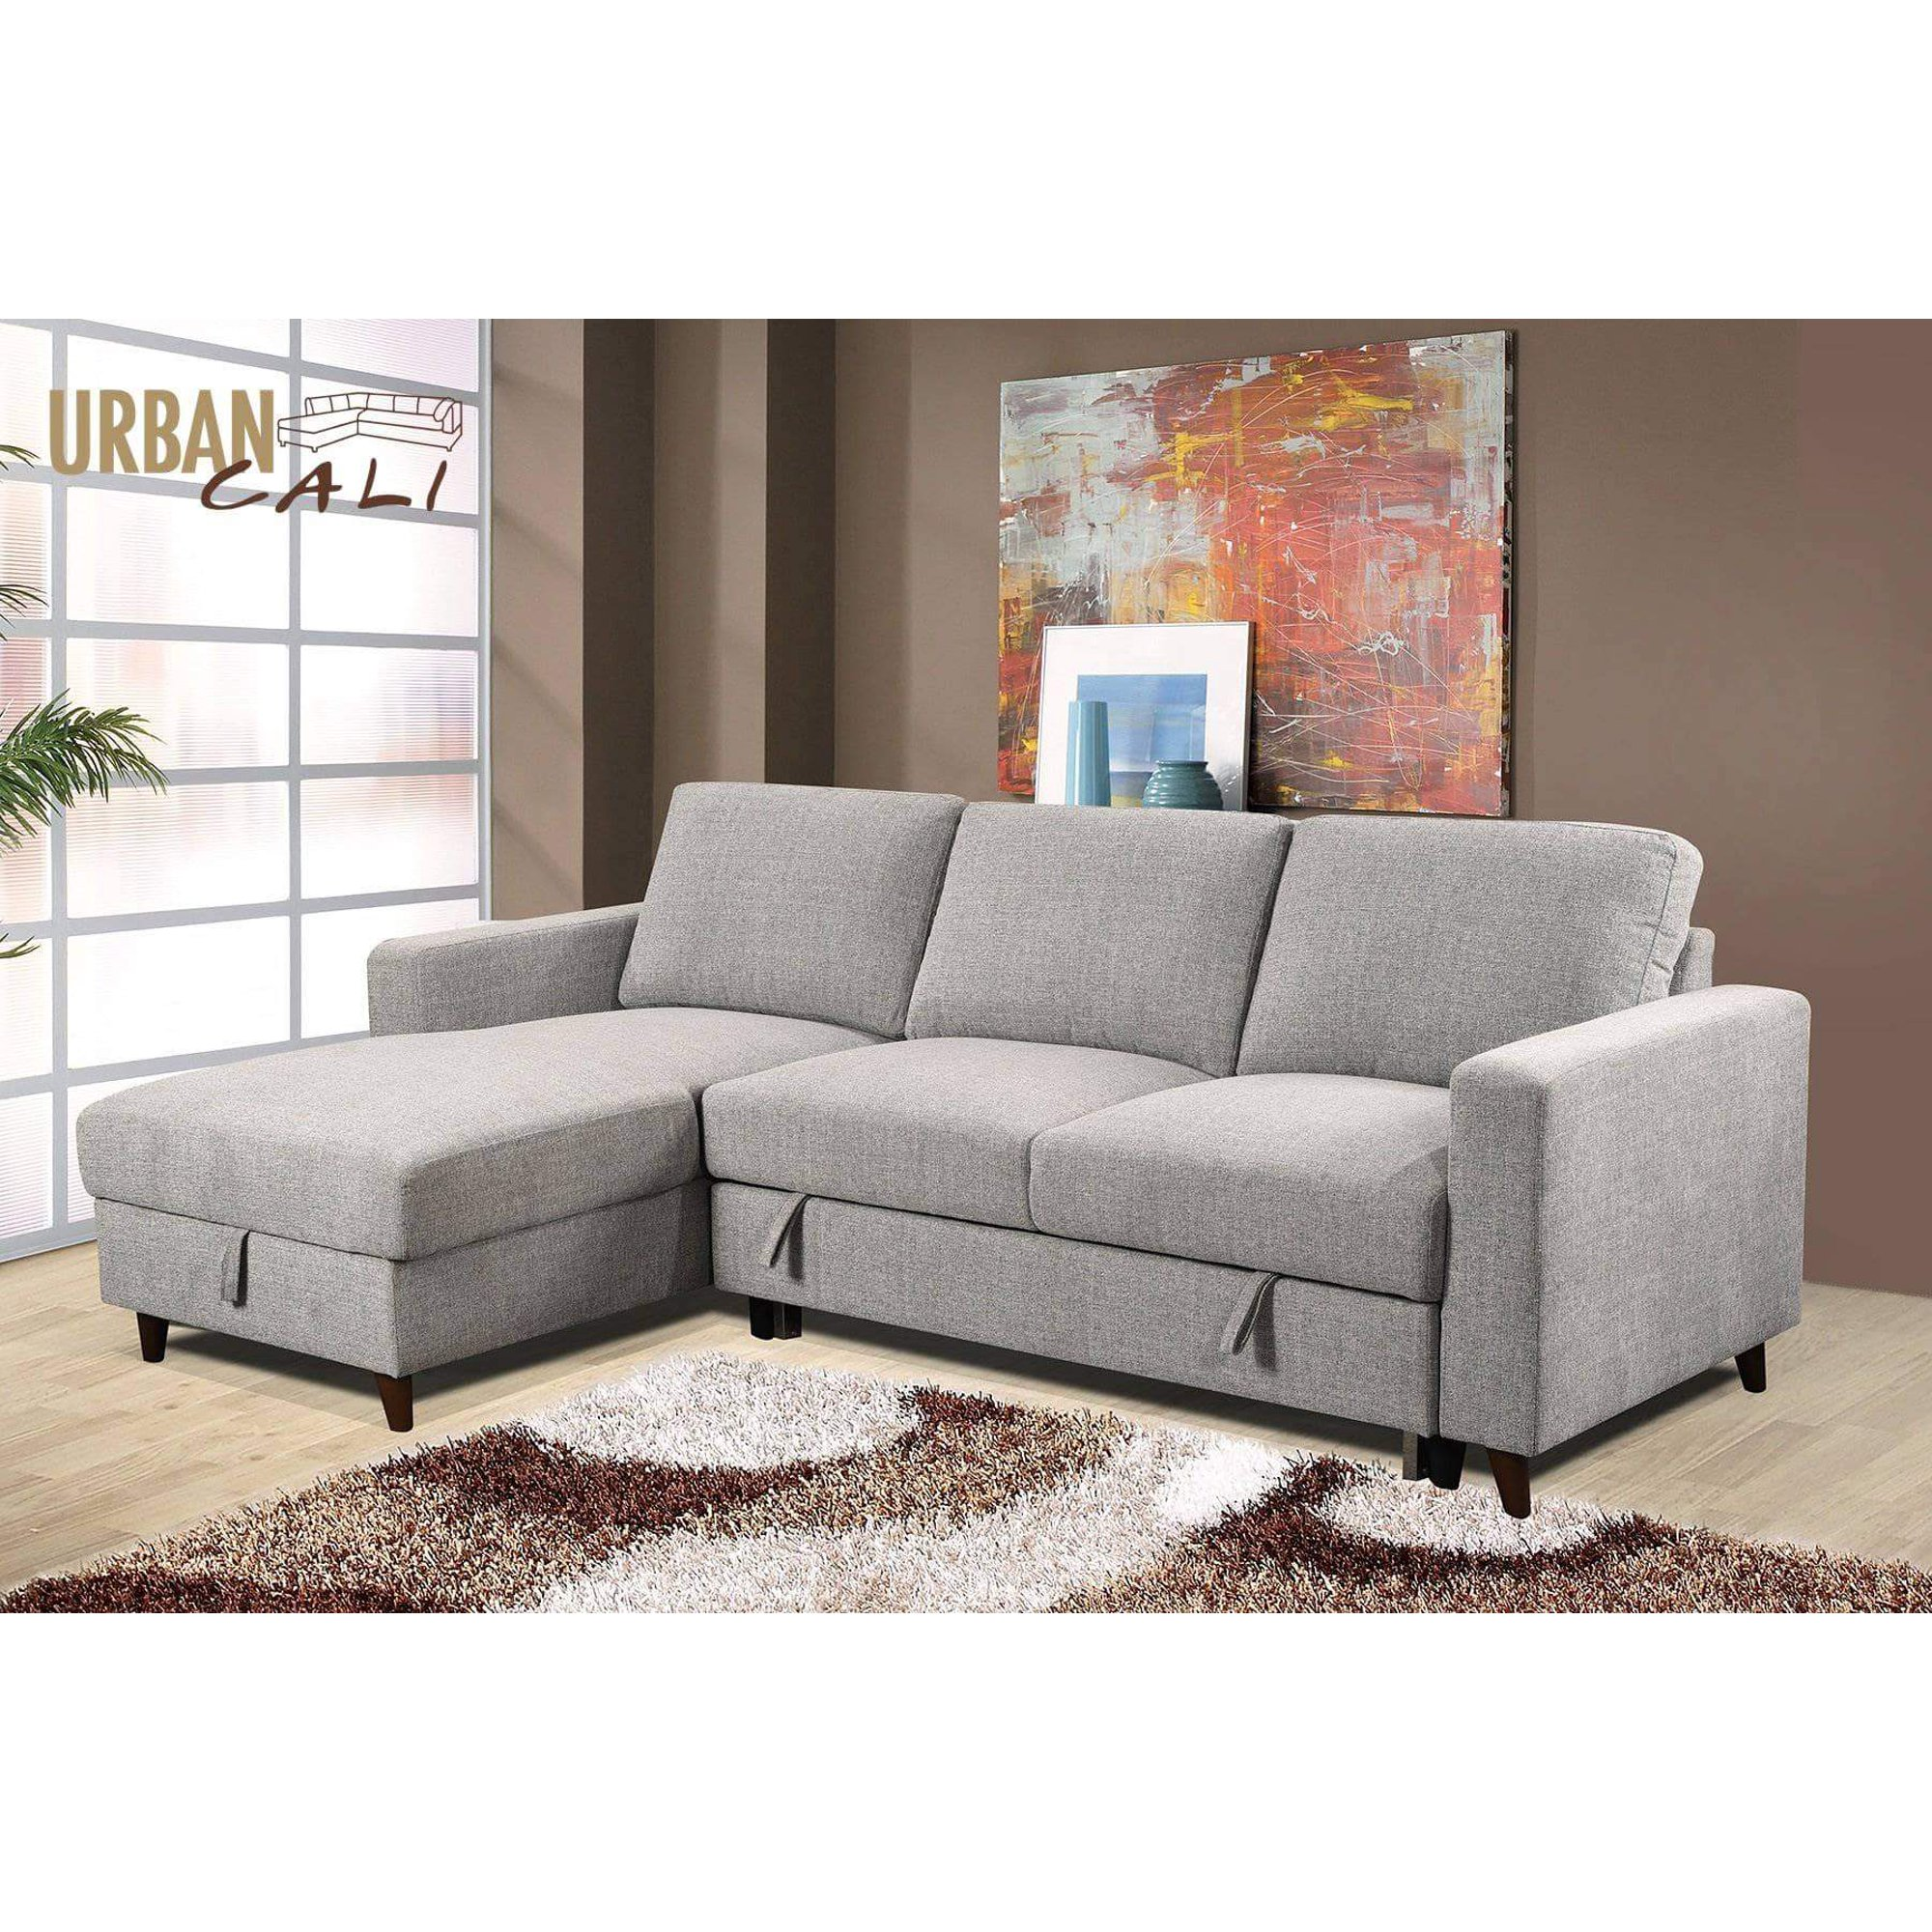 Tremendous Urban Cali Giancarlo Sleeper Sectional Sofa Bed With Storage Pabps2019 Chair Design Images Pabps2019Com